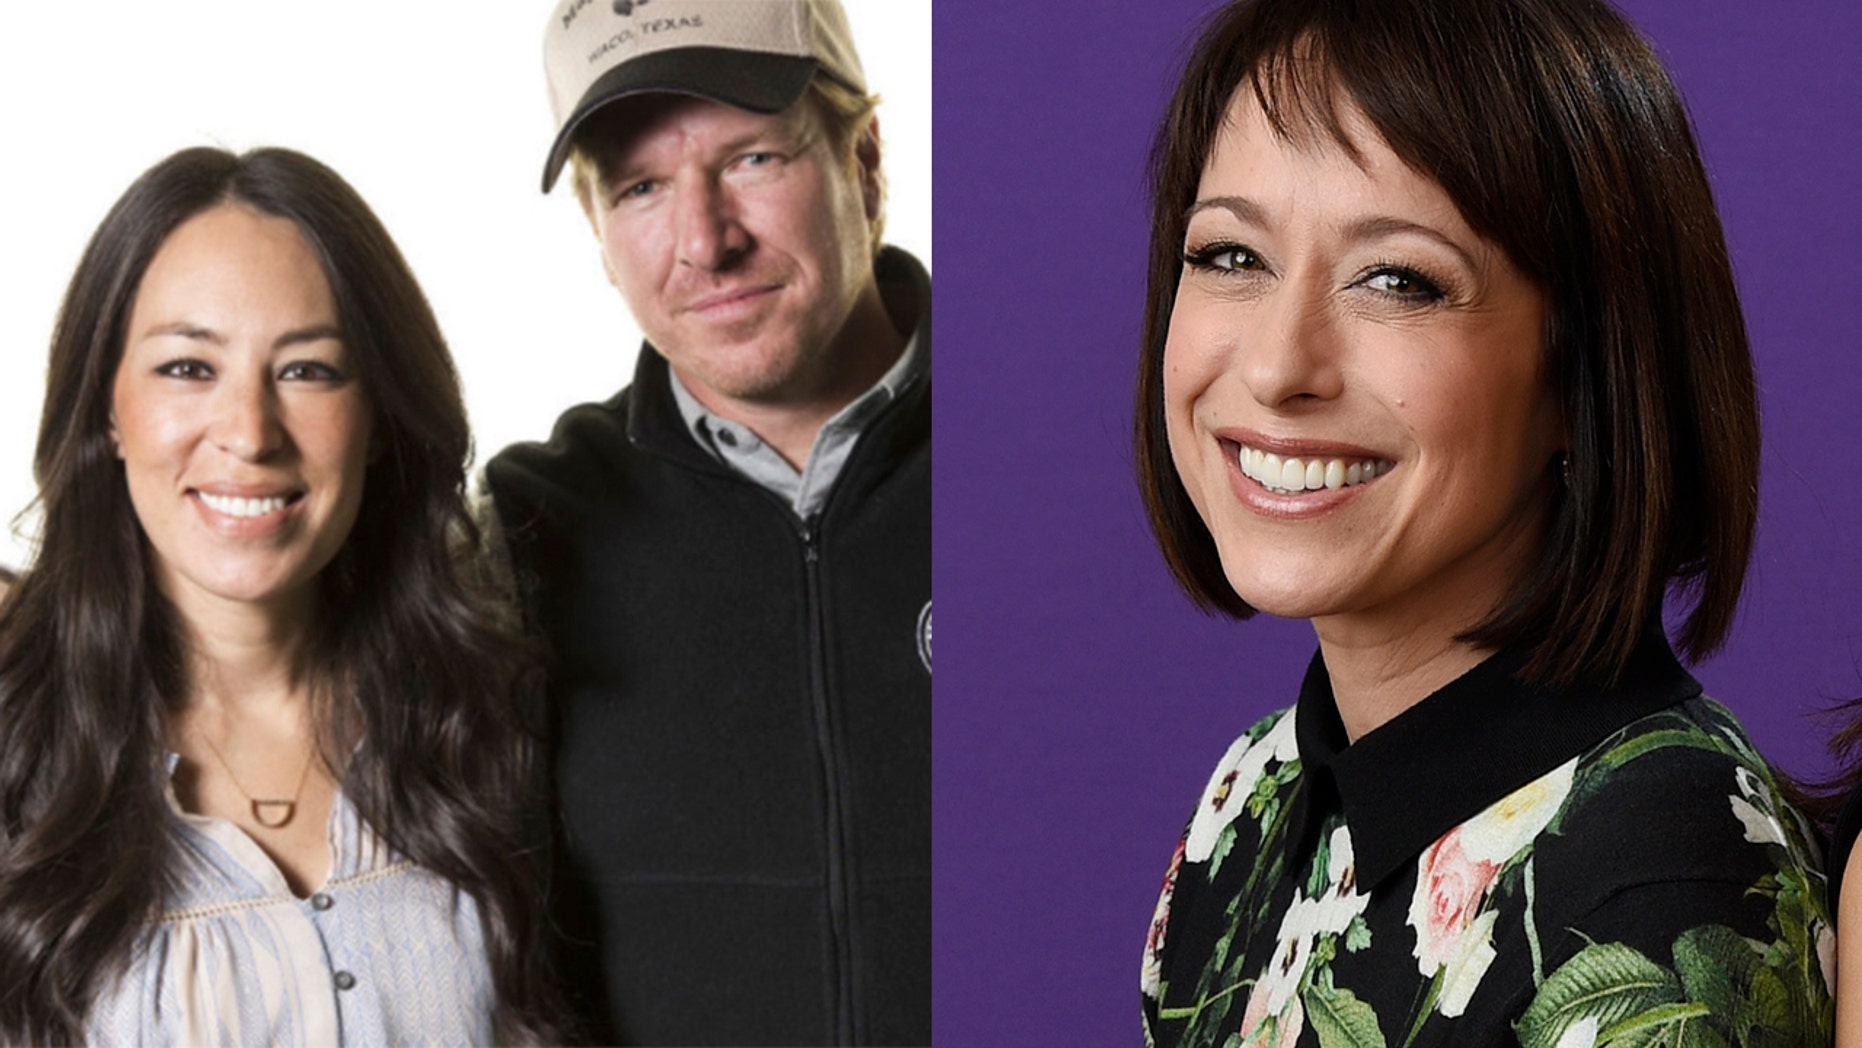 Paige Davis (right) seemed to throw shade at HGTV stars Chip and Joanna Gaines during a press tour.